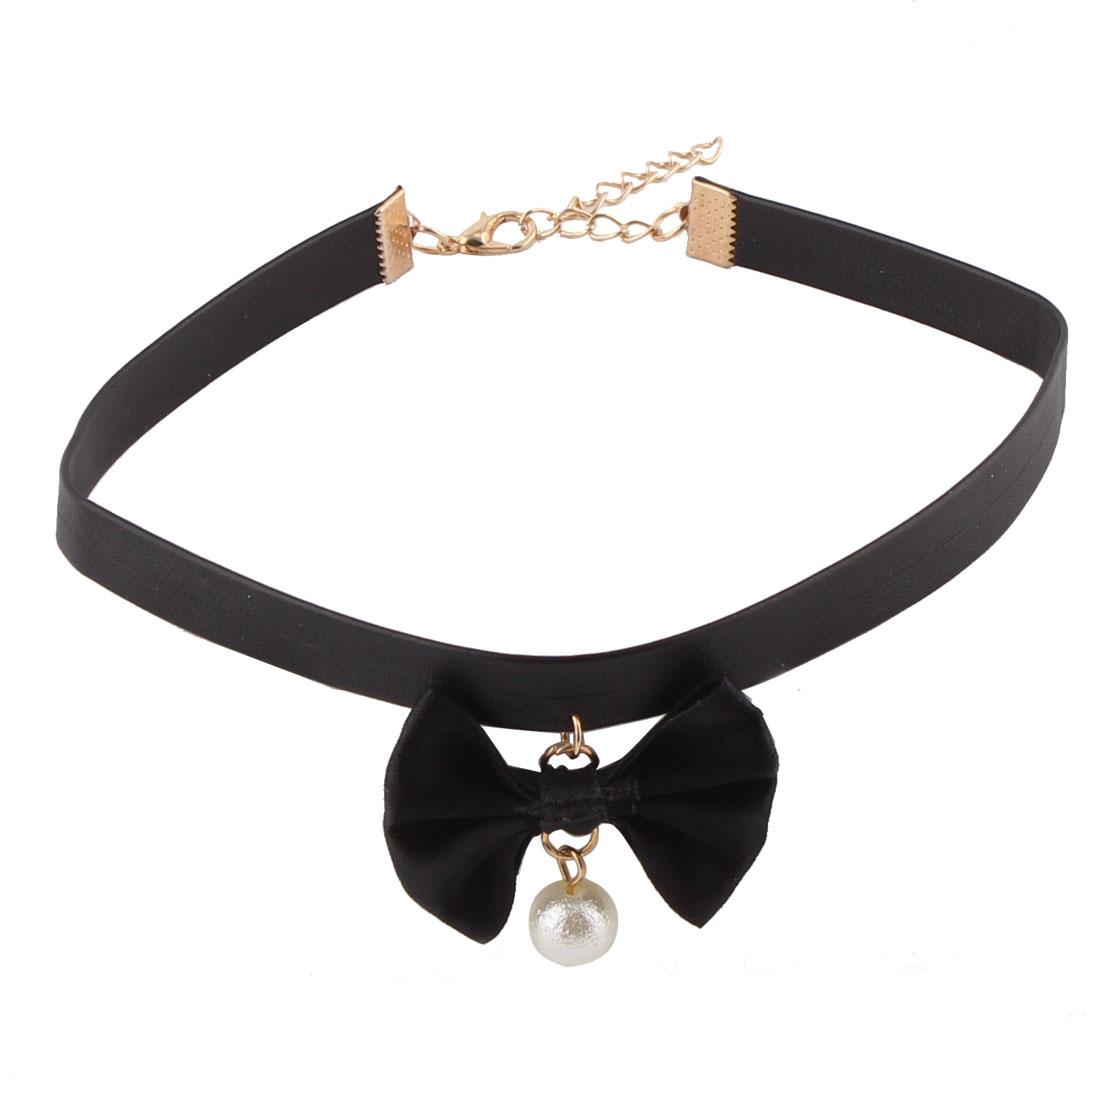 Lady Faux Leather Bow Decoration Imitation Pearl Pendant Ribbon Choker Necklace Black